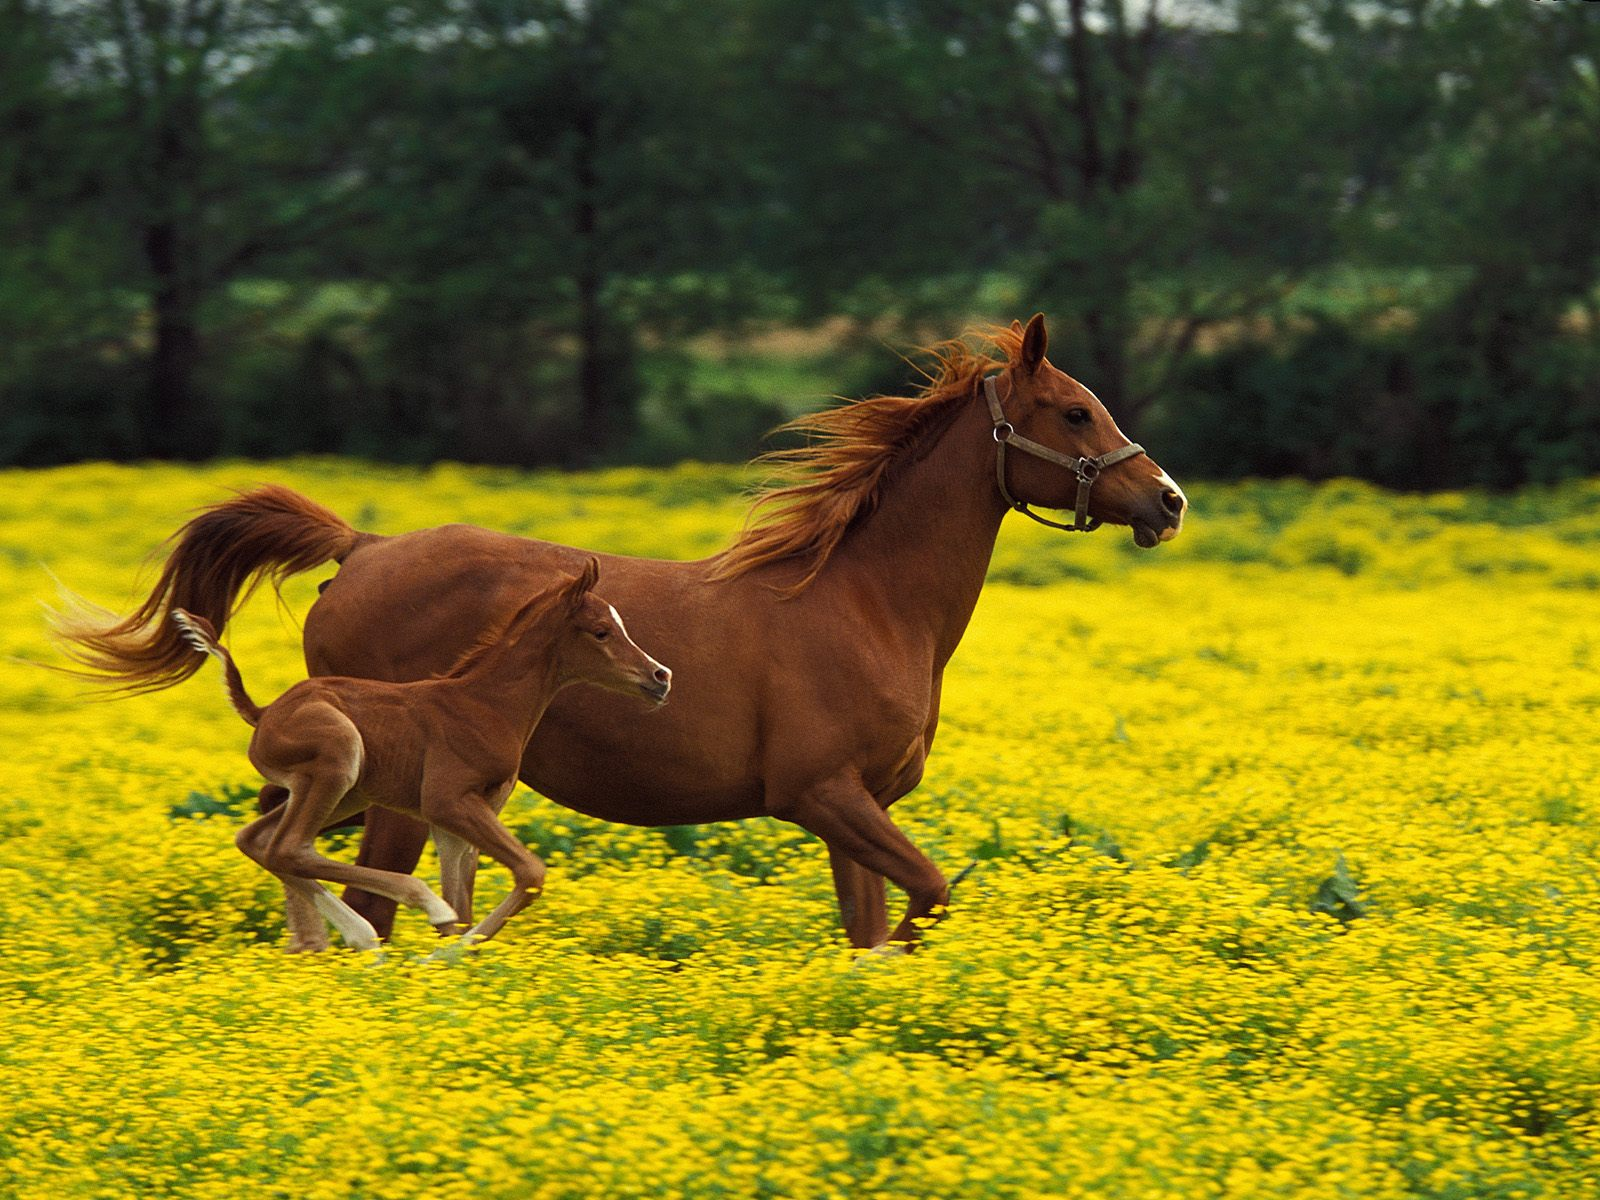 All Wallpapers Beautiful Horse Hd Wallpapers 2013 1600x1200